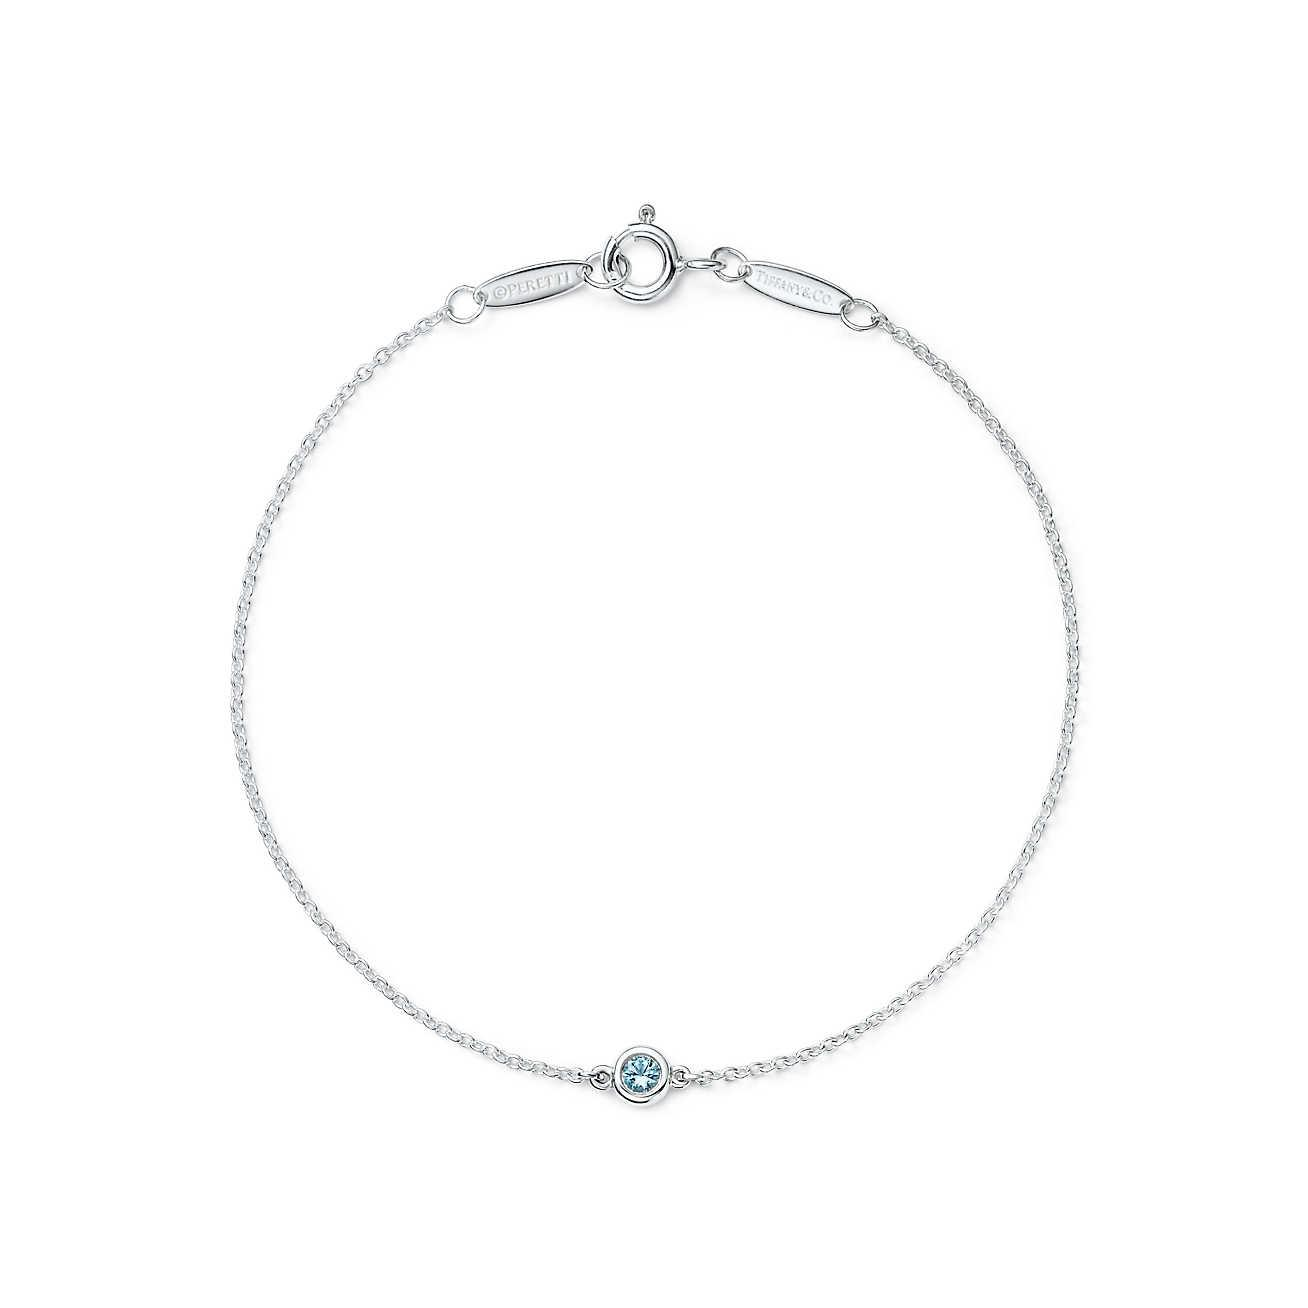 34b3f2c0c62b2 Women's Metallic Elsa Peretti® Colour By The Yard Bracelet In Sterling  Silver With An Aquamarine